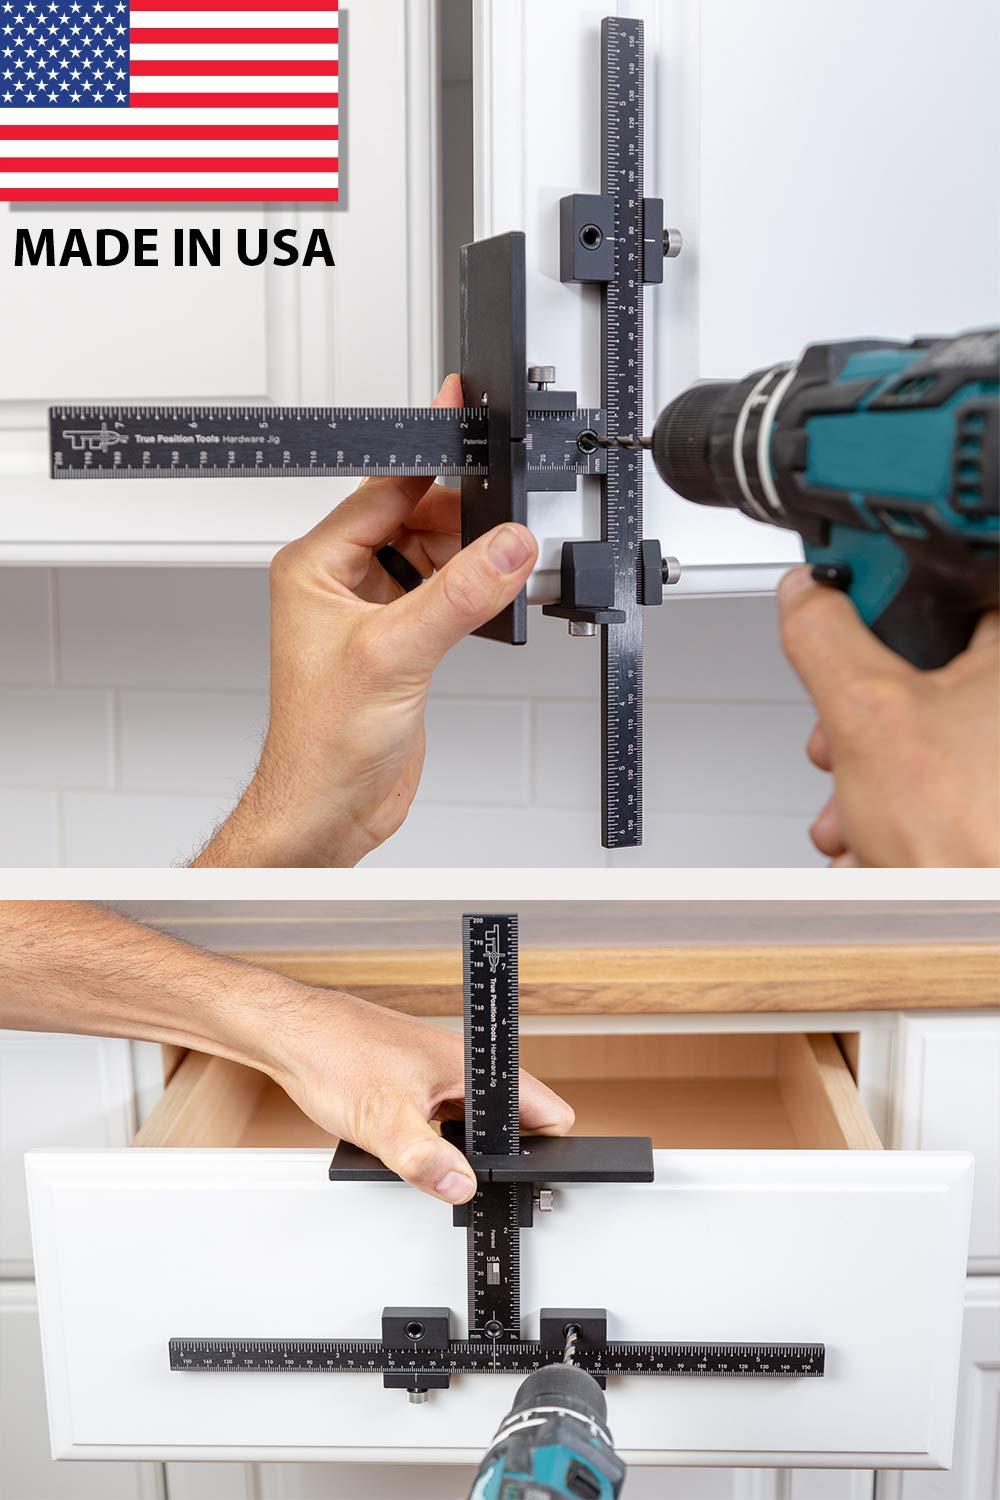 TP-1934 - Cabinet Hardware Jig with Case - Accurate Drawer Knob Pull Drilling - Drill Template for Professional Hardware Mount Installation - Adjustable Door Tool - Made in USA - True Position Tools